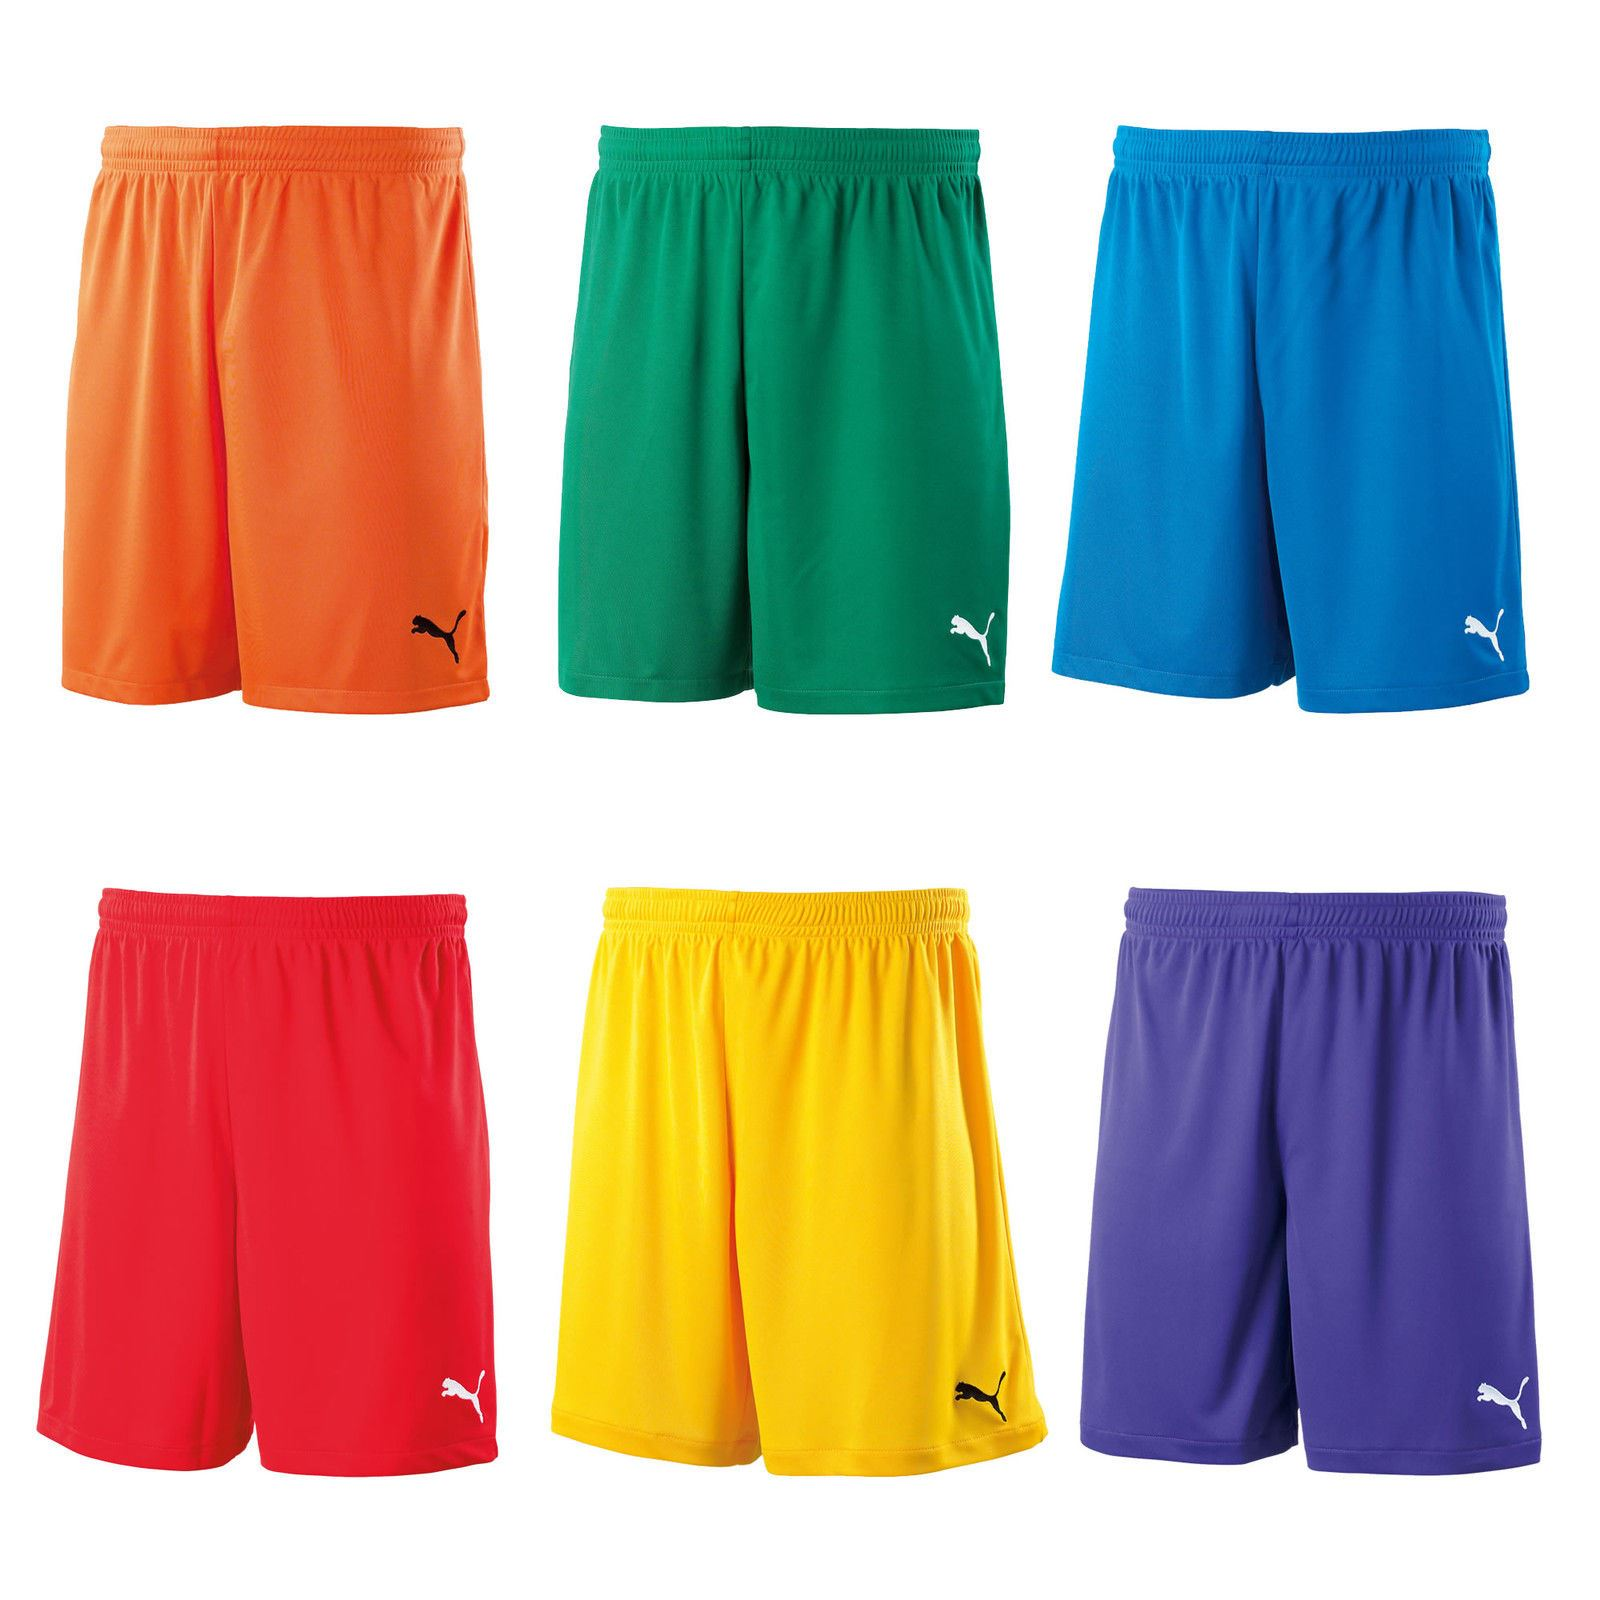 f0f2fea62c73 Details about PUMA VELIZE SPORT SHORTS POLYESTER RUNNING FITNESS BOYS GIRLS  SCHOOL FOOTBALL